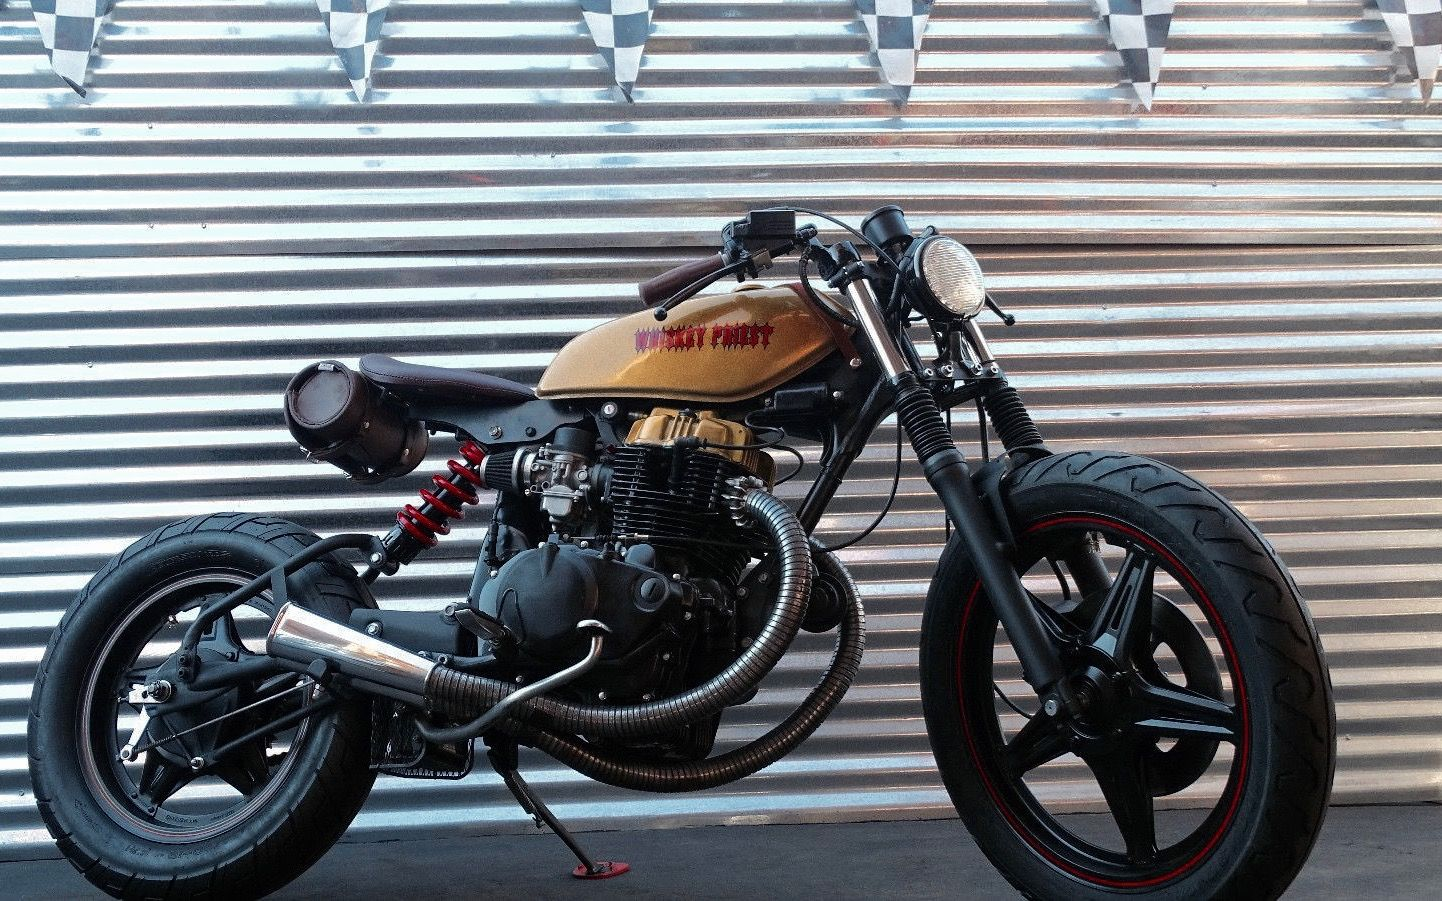 The Whiskey Priest Inazuma Cafe Racer Cafe Racer Vintage